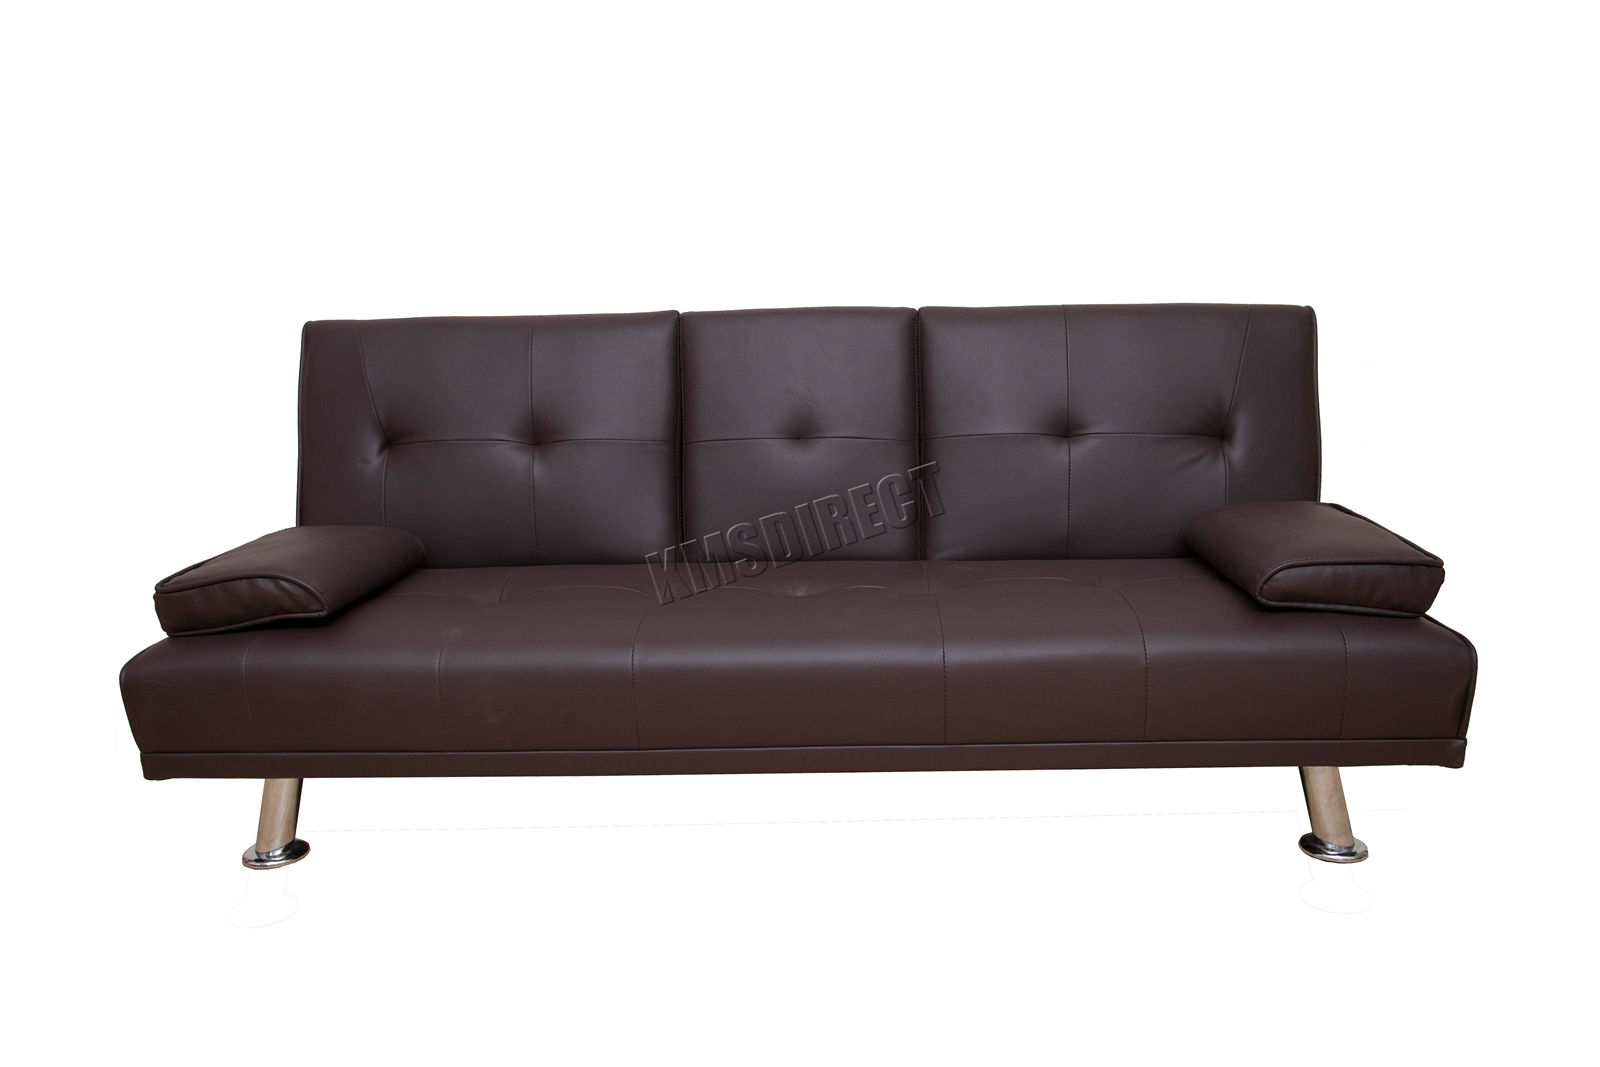 WestWood-Faux-Leather-Manhattan-Sofa-Bed-recliner-3-Seater-Modern-Luxury-Design thumbnail 26